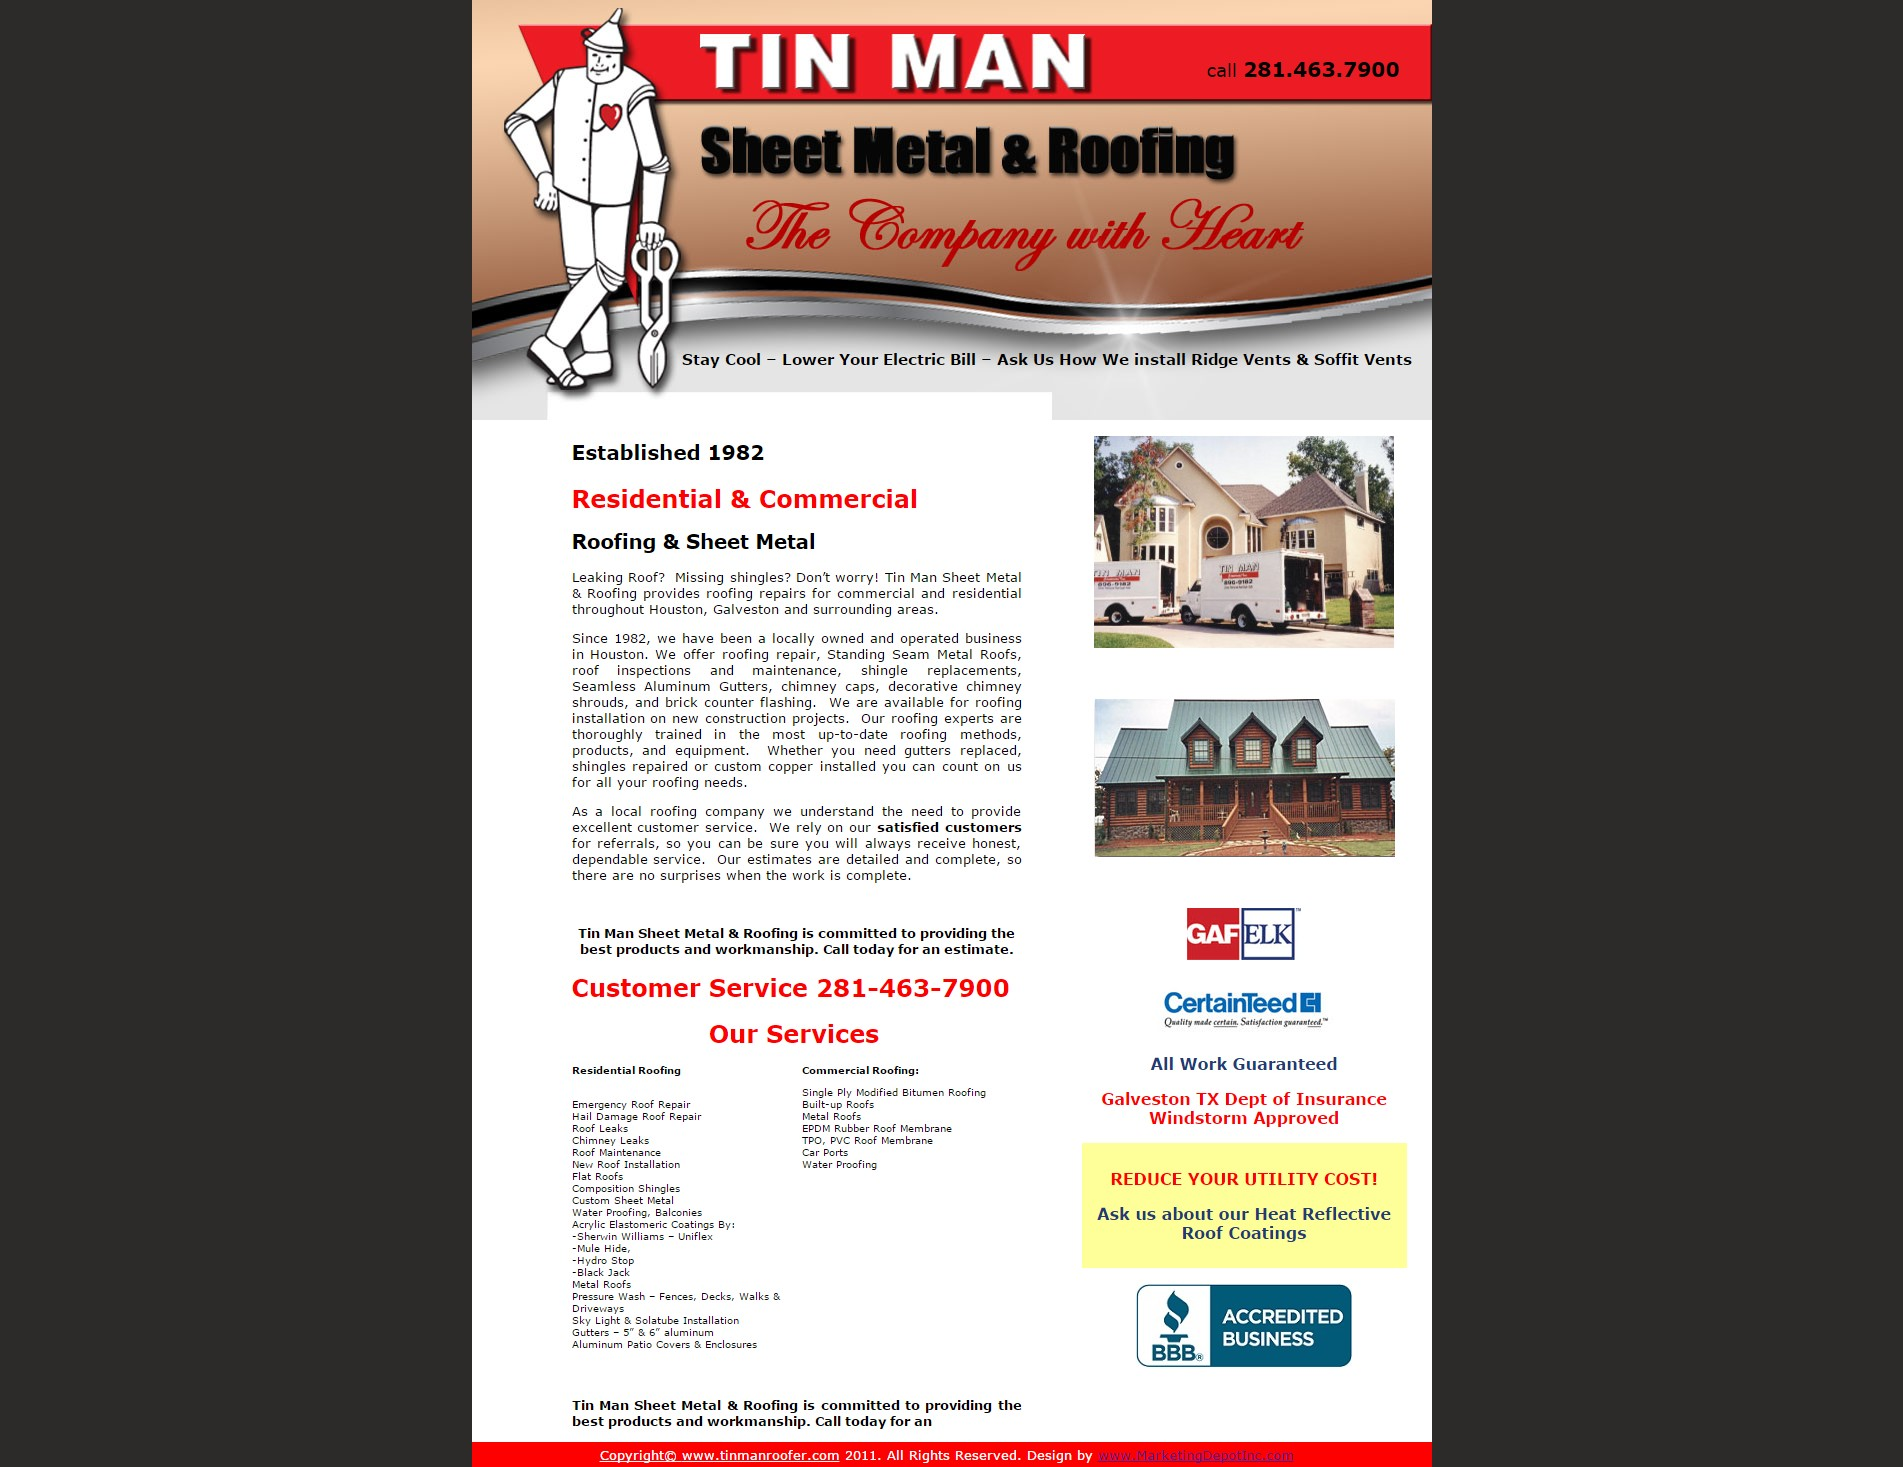 Tin Man Sheet Metal & Roofing